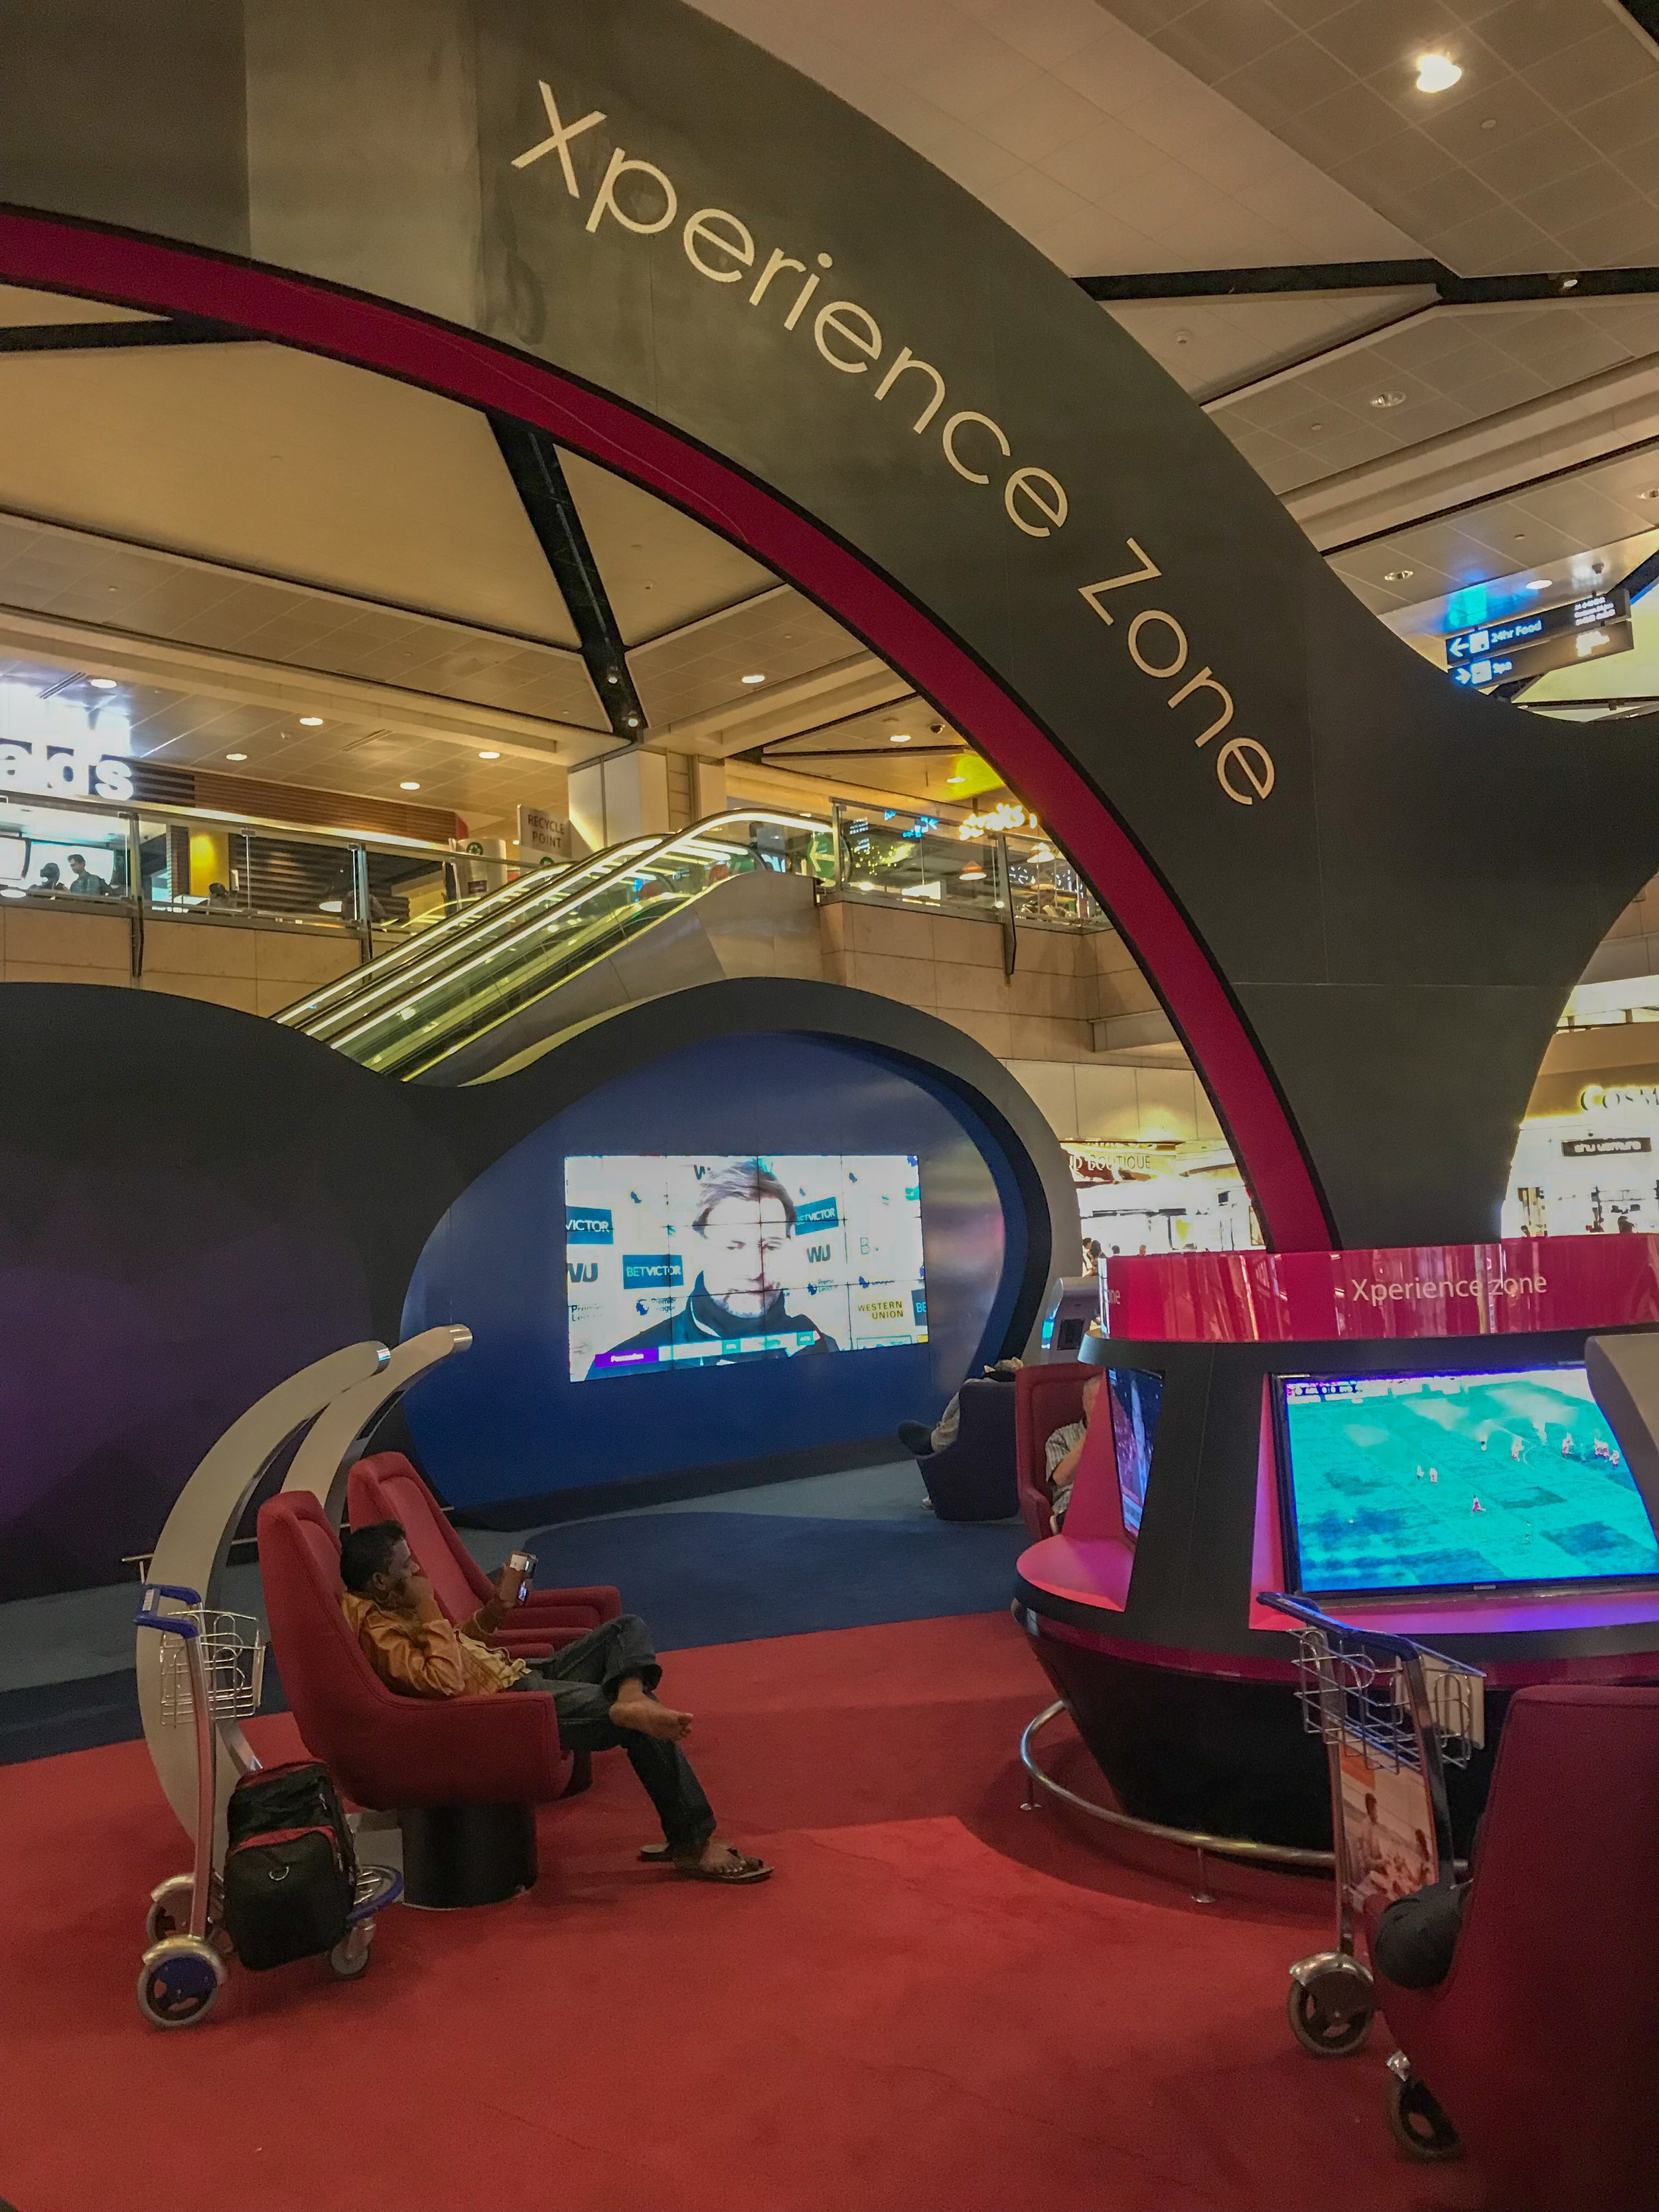 One of Changi's entertainment pavilions